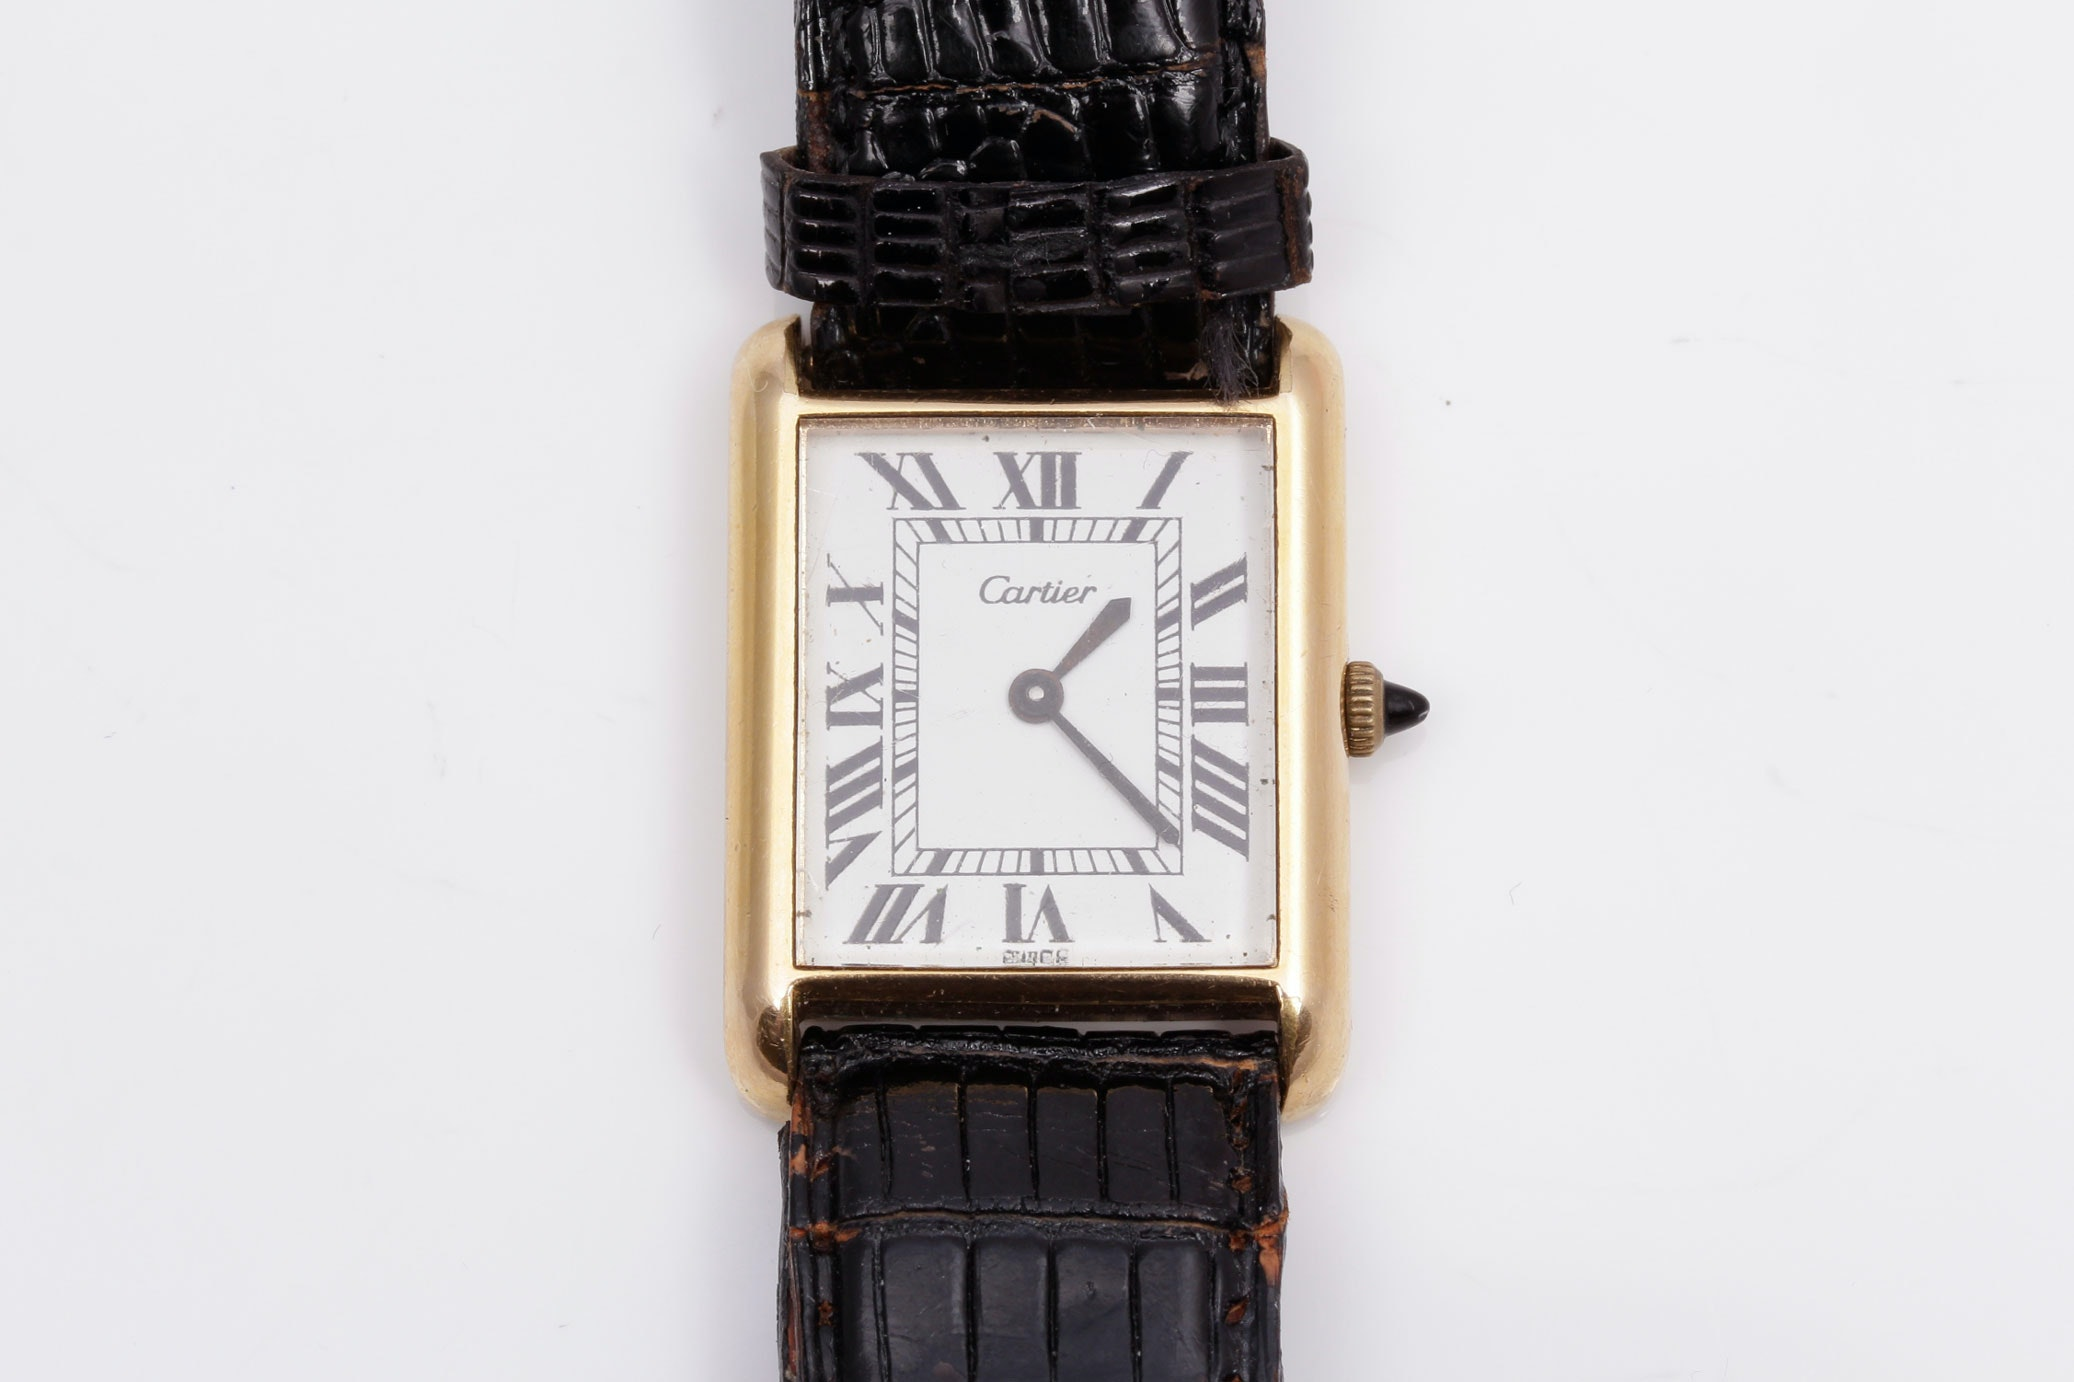 Vintage Cartier 18K Electroplated Yellow Gold Watch